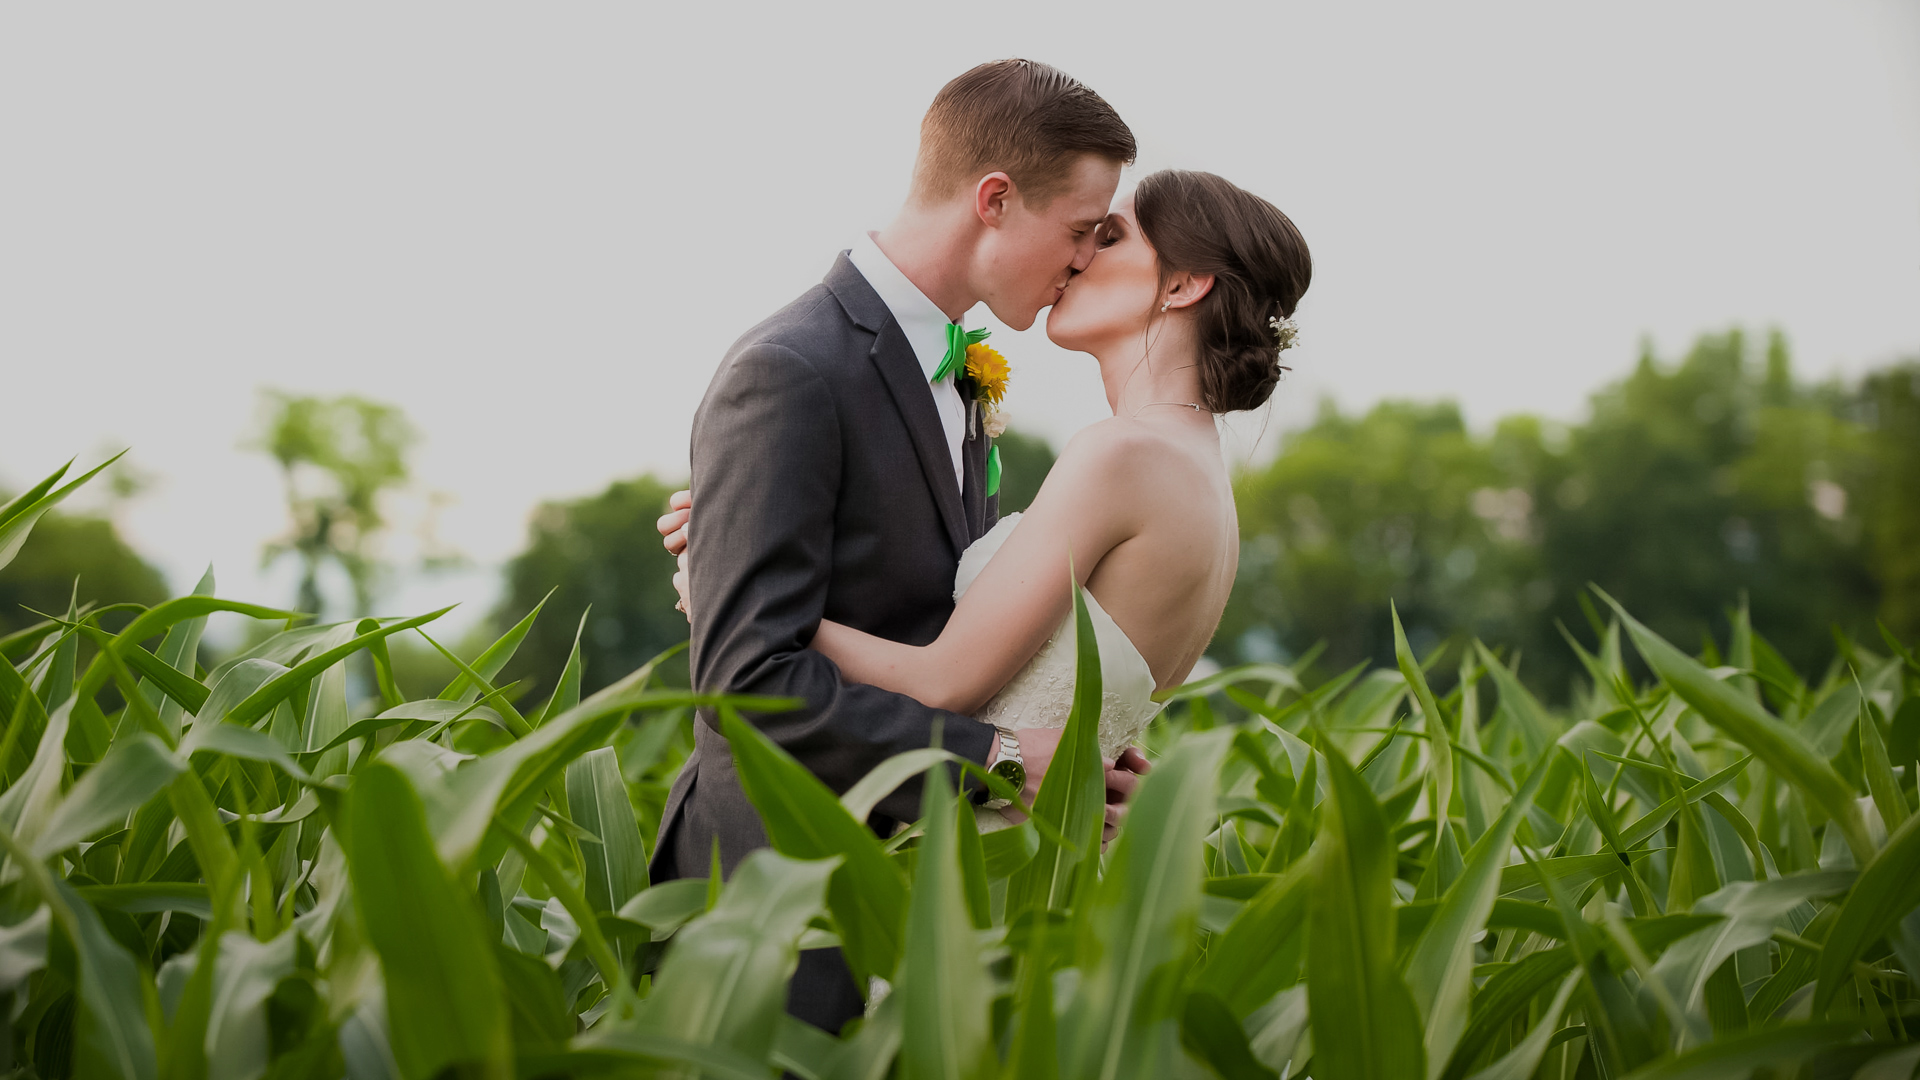 Check portfolios, pricing and availability for wedding photographers in Harrisburg